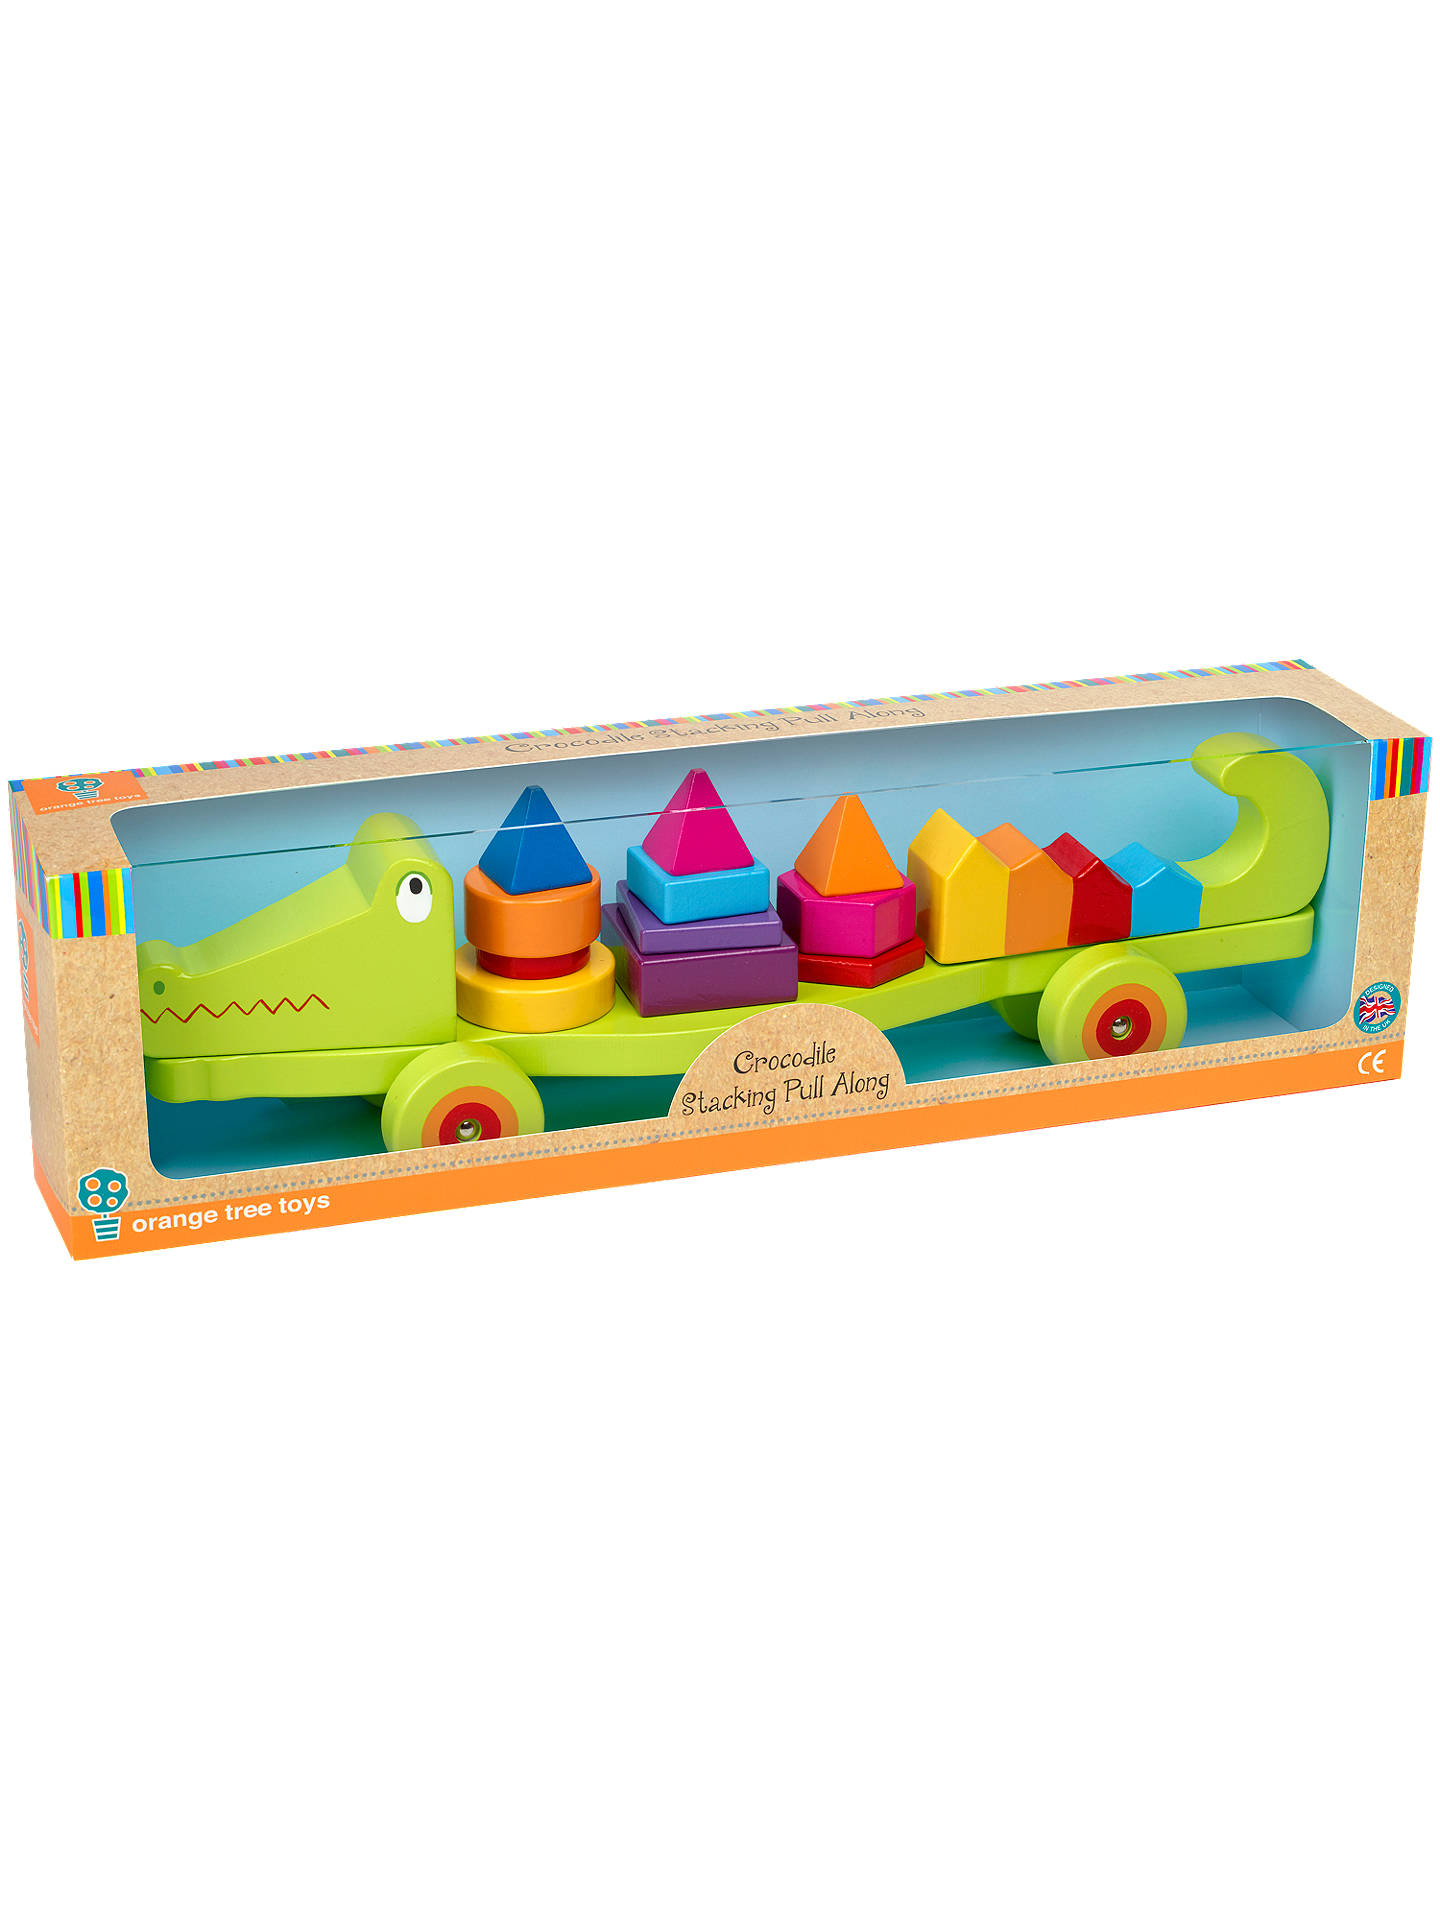 Buy Orange Tree Crocodile Stacking Pull Along Online at johnlewis.com